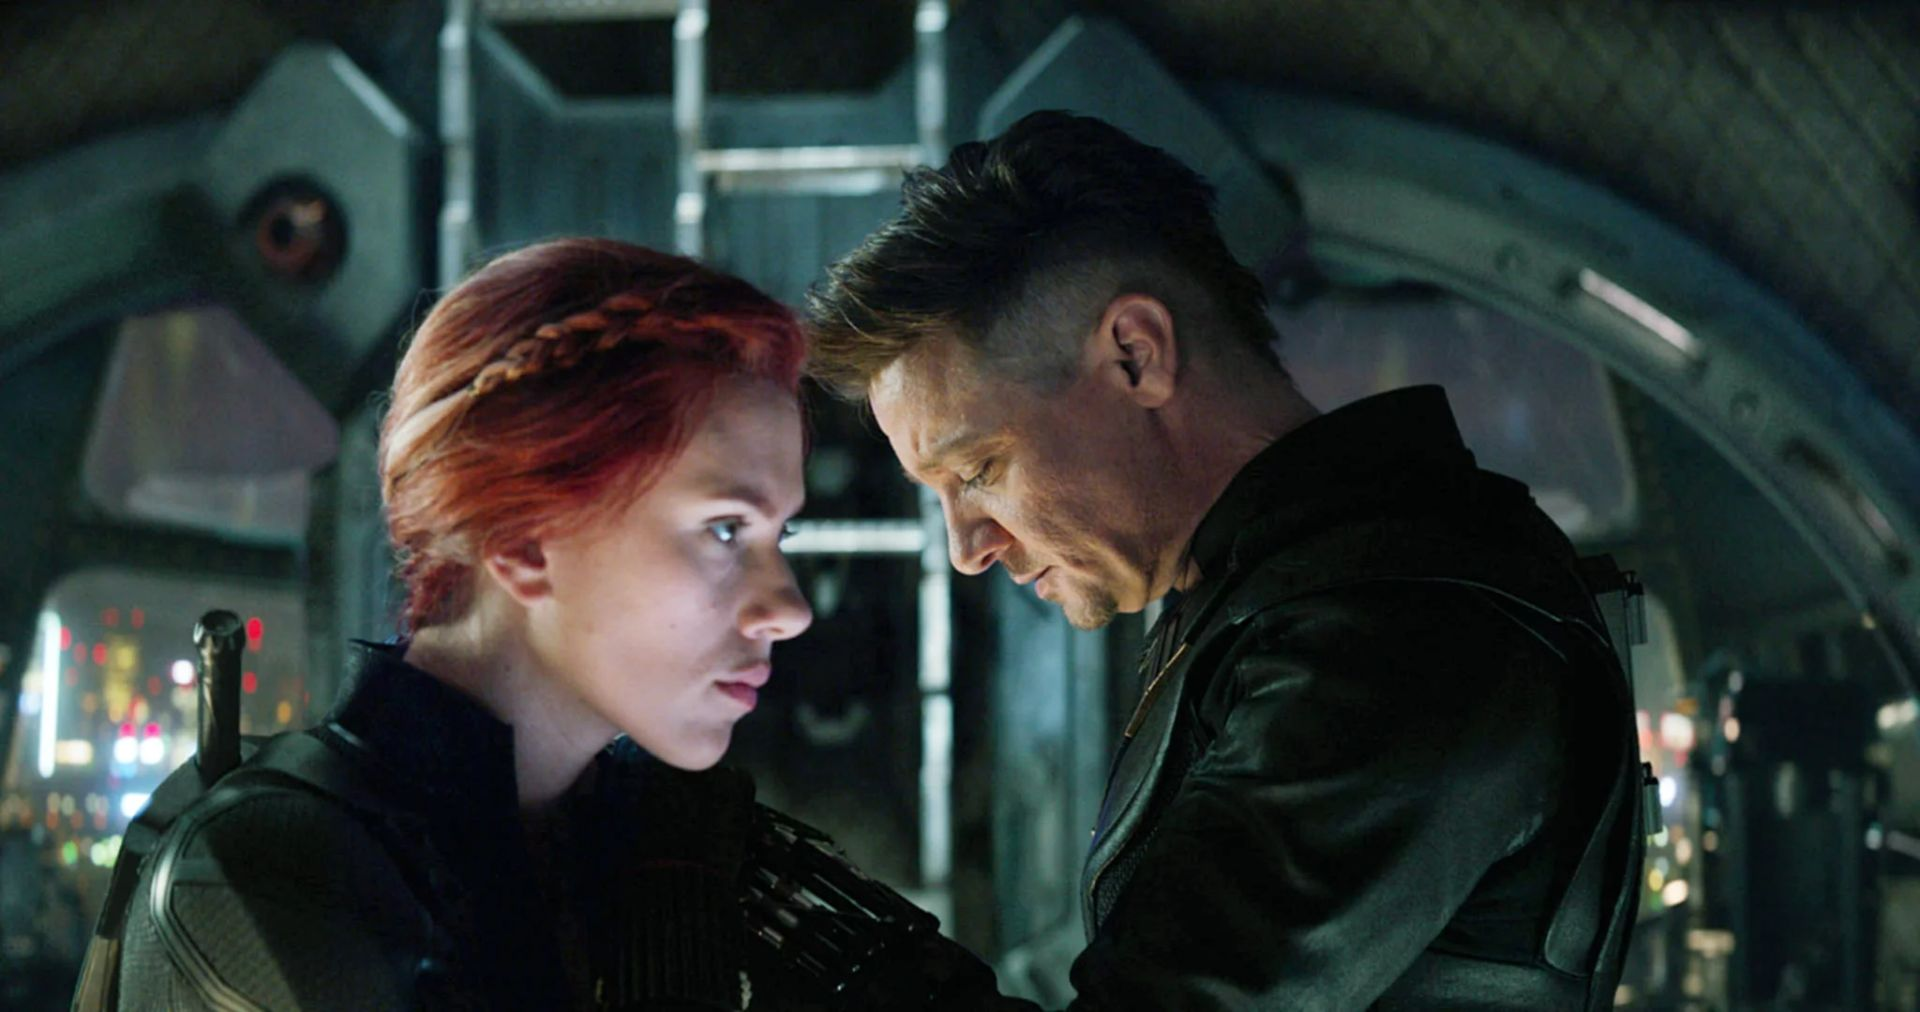 The Writers for ENDGAME Had a Scene Where Clint and Natasha Talk About Their Relationship on the Way to Vormir